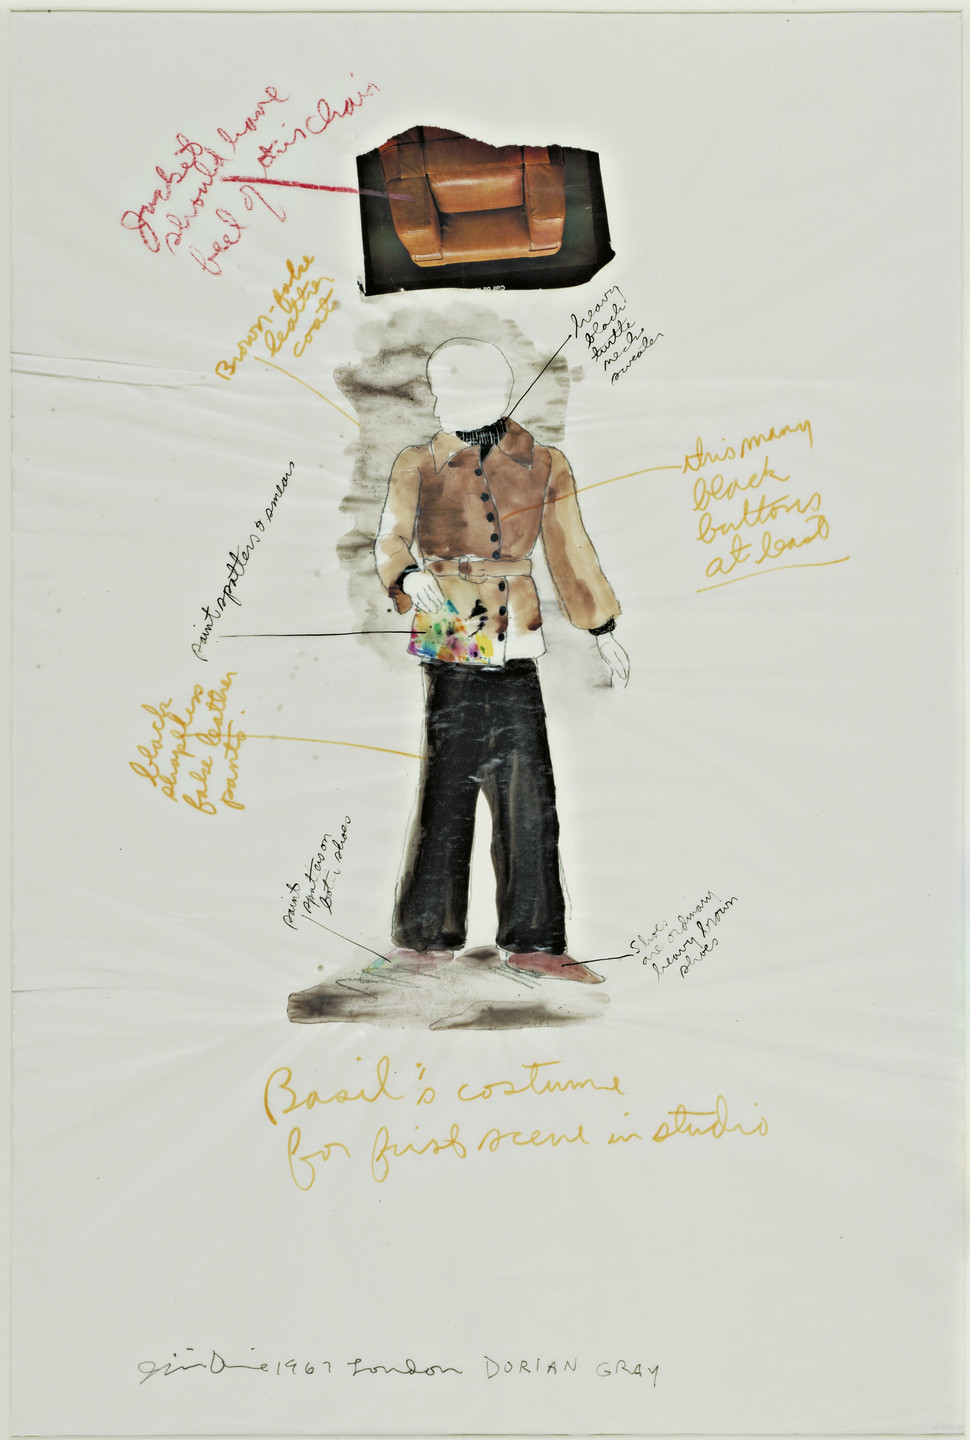 Jim Dine. Basil Hallward's Costume for the First Scene in Studio. Costume design for The Picture of Dorian Gray. 1967